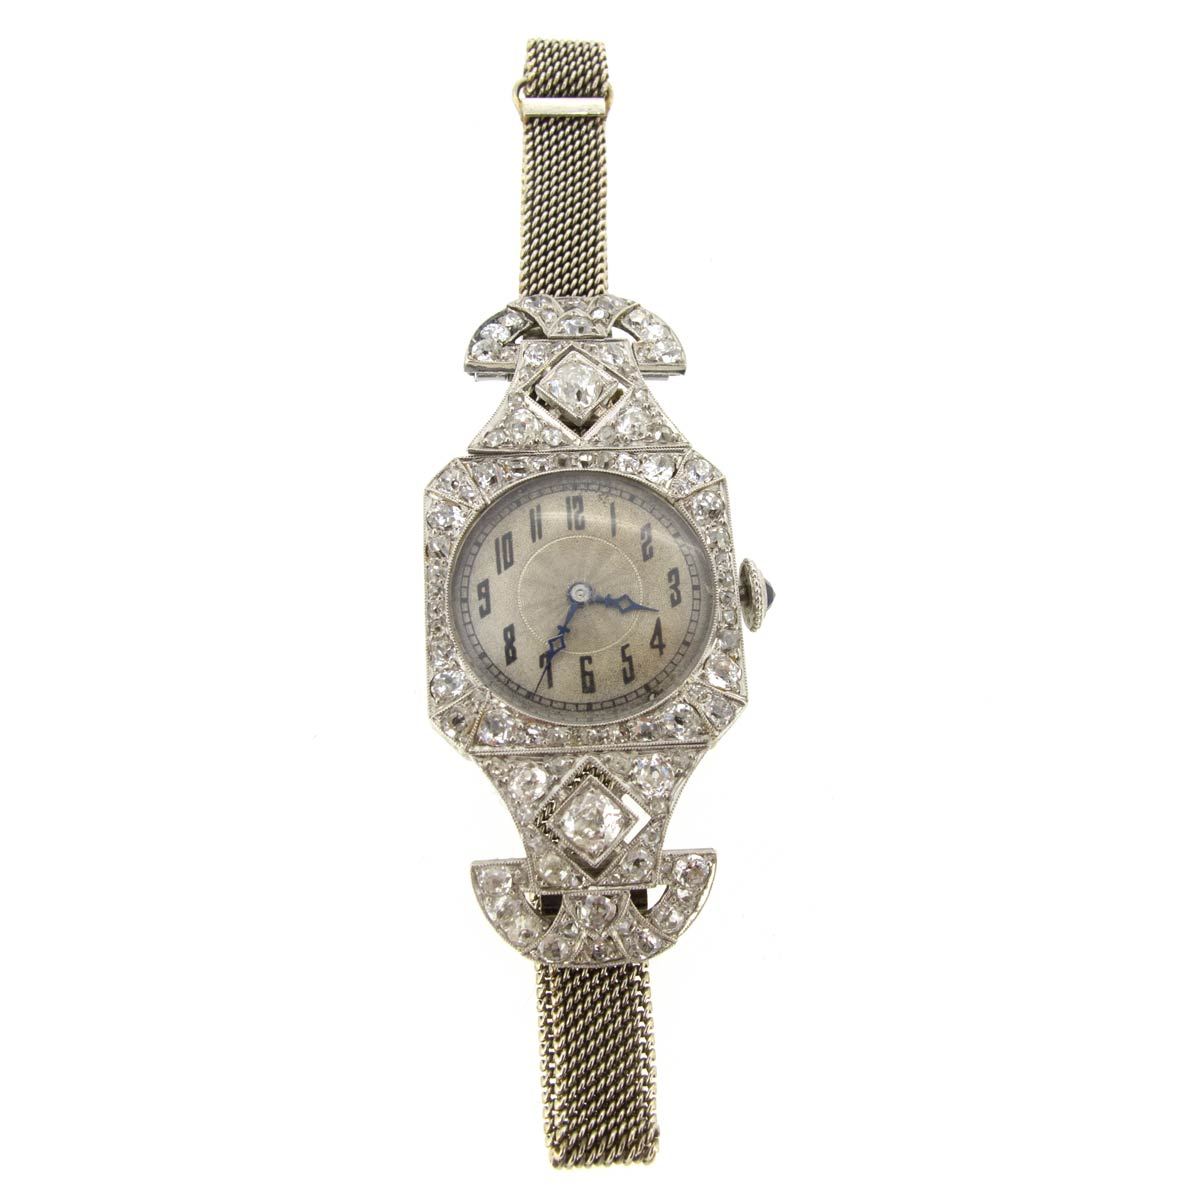 Art Deco Diamond Vacheron Constantin Watch